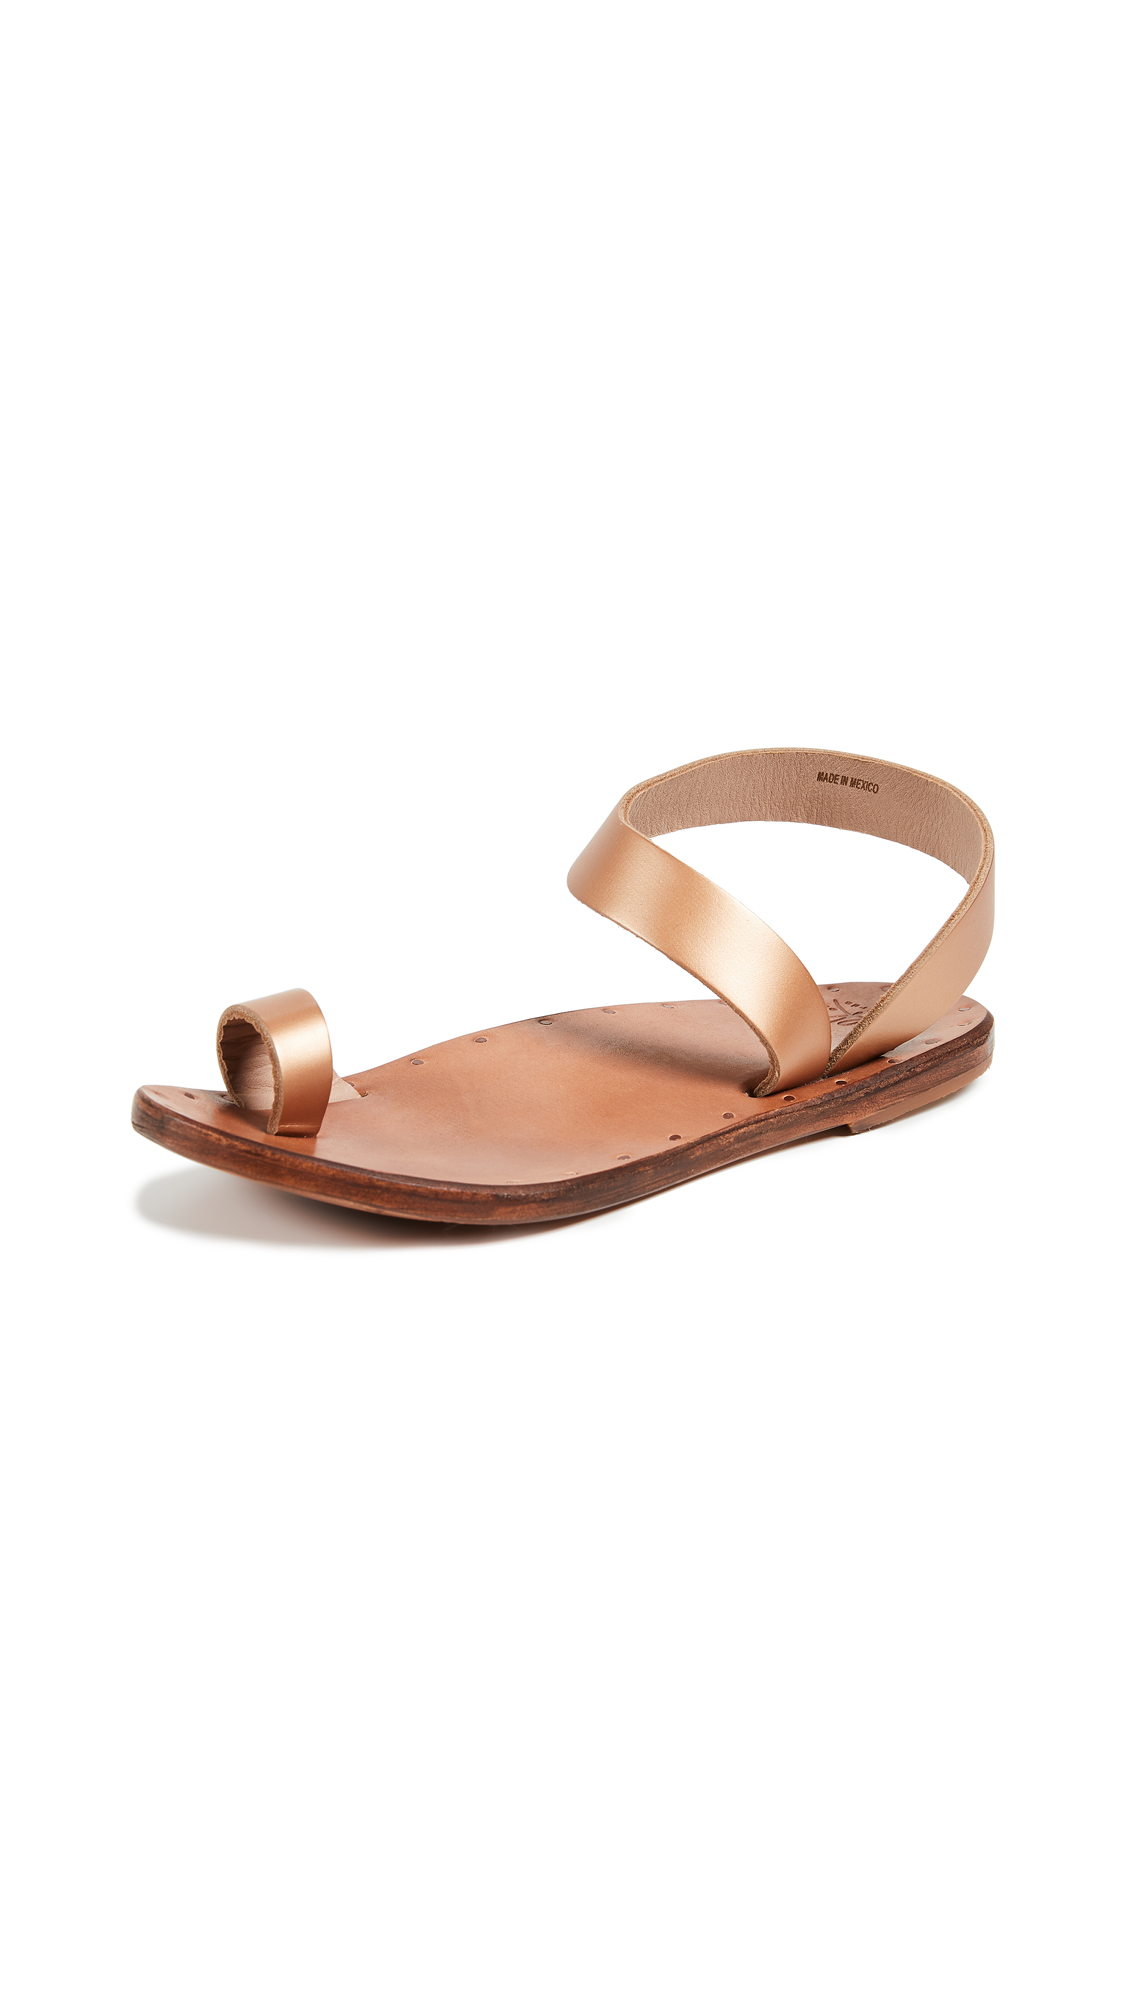 beek Oriole Sandals - Rose Gold/Tan